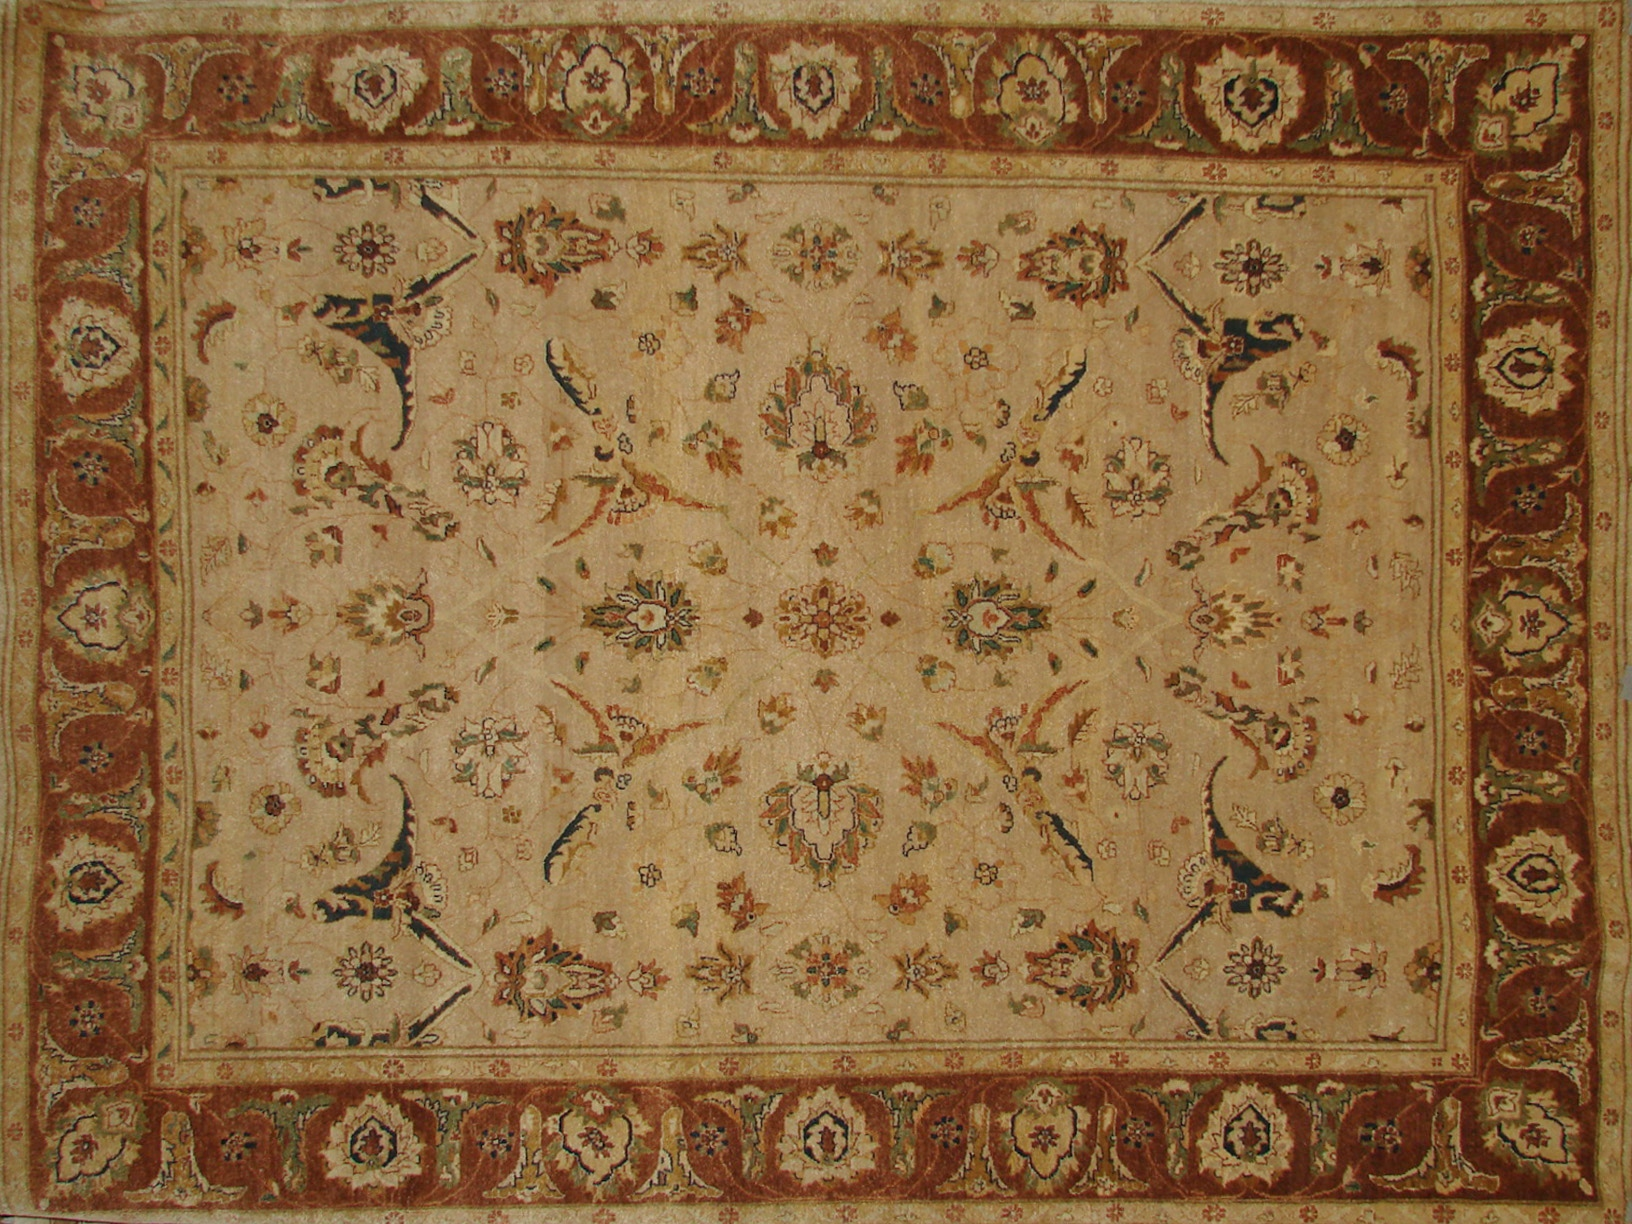 8x10 Traditional Hand Knotted Wool Area Rug - MR2661